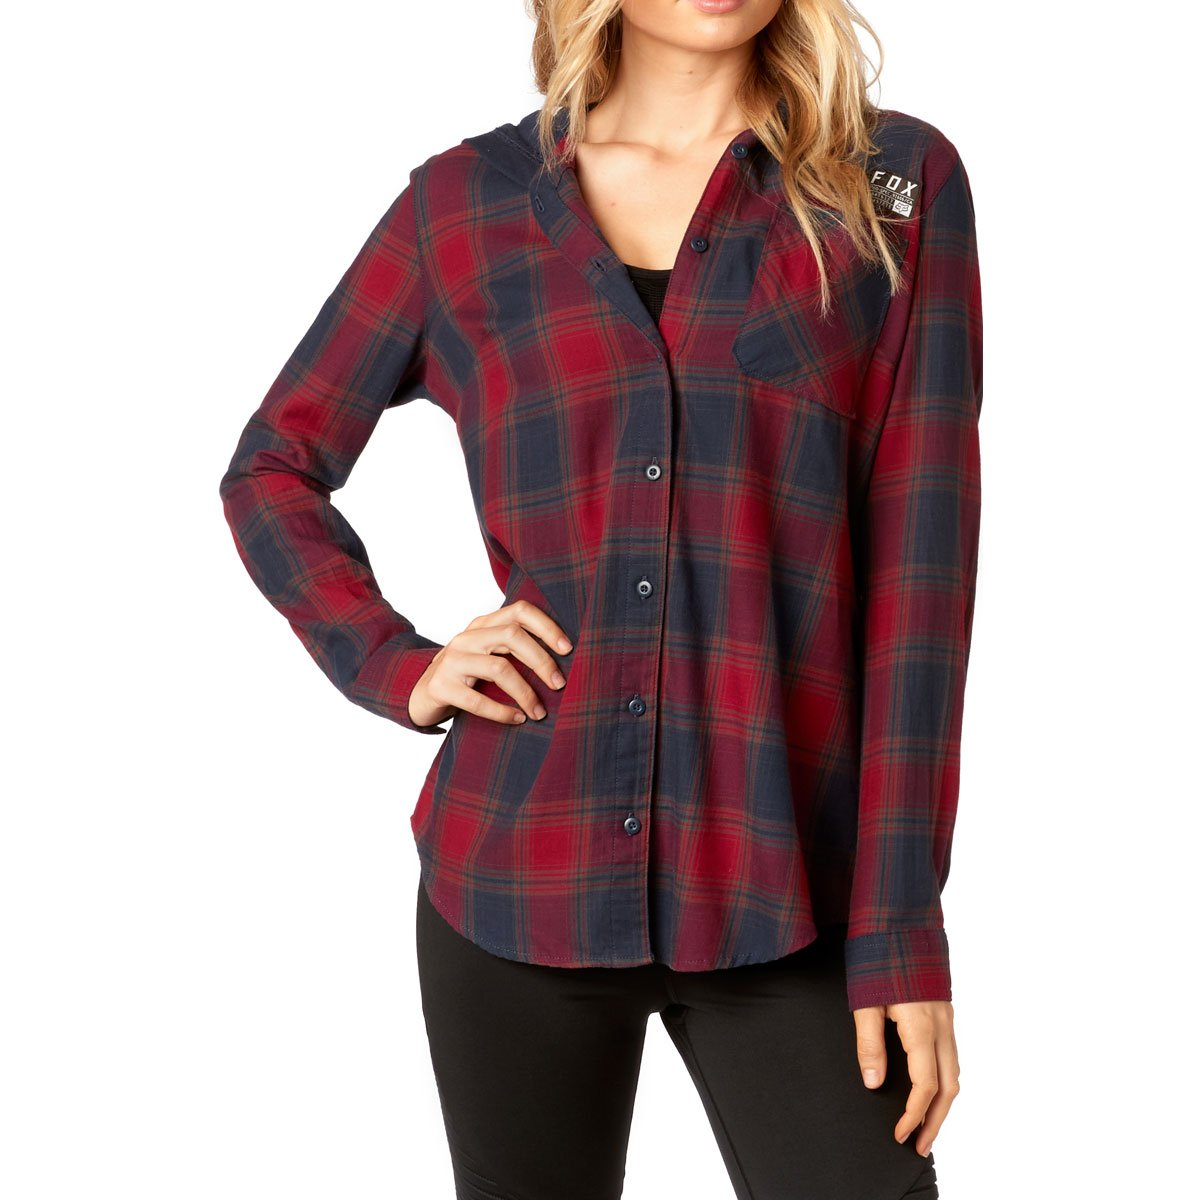 Fox Racing Women's Deny Flannel L/S Shirts,Small,Dark Red